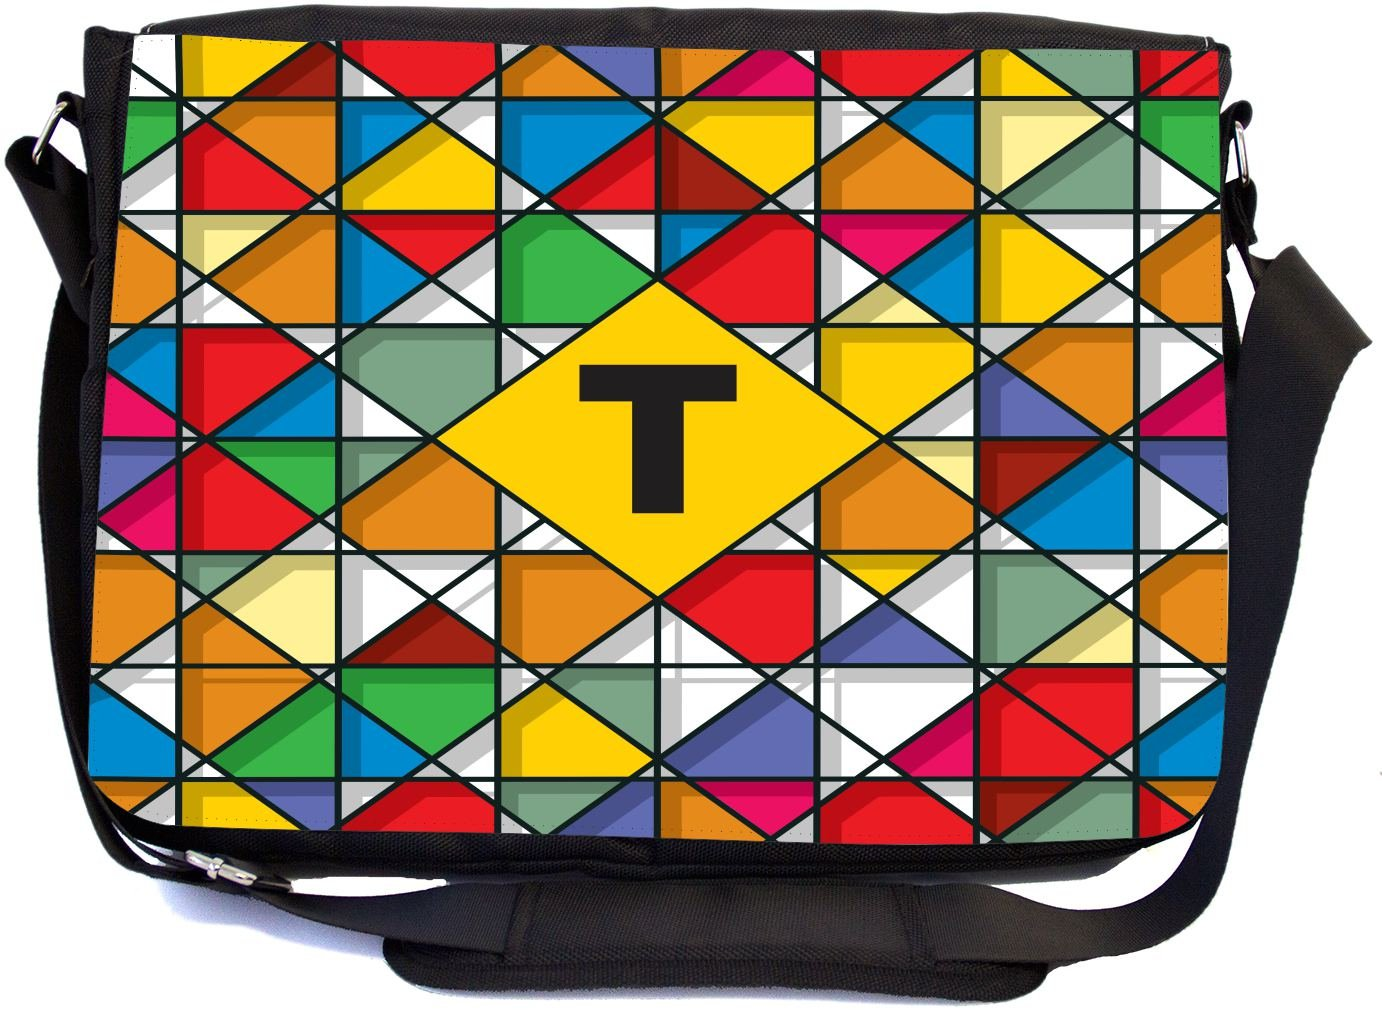 Rikki Knight Letter T Monogram Vibrant Colors Stained Glass Design Design Combo Multifunction Messenger Laptop Bag - with Padded Insert for School or Work - Includes Wristlet & Mirror